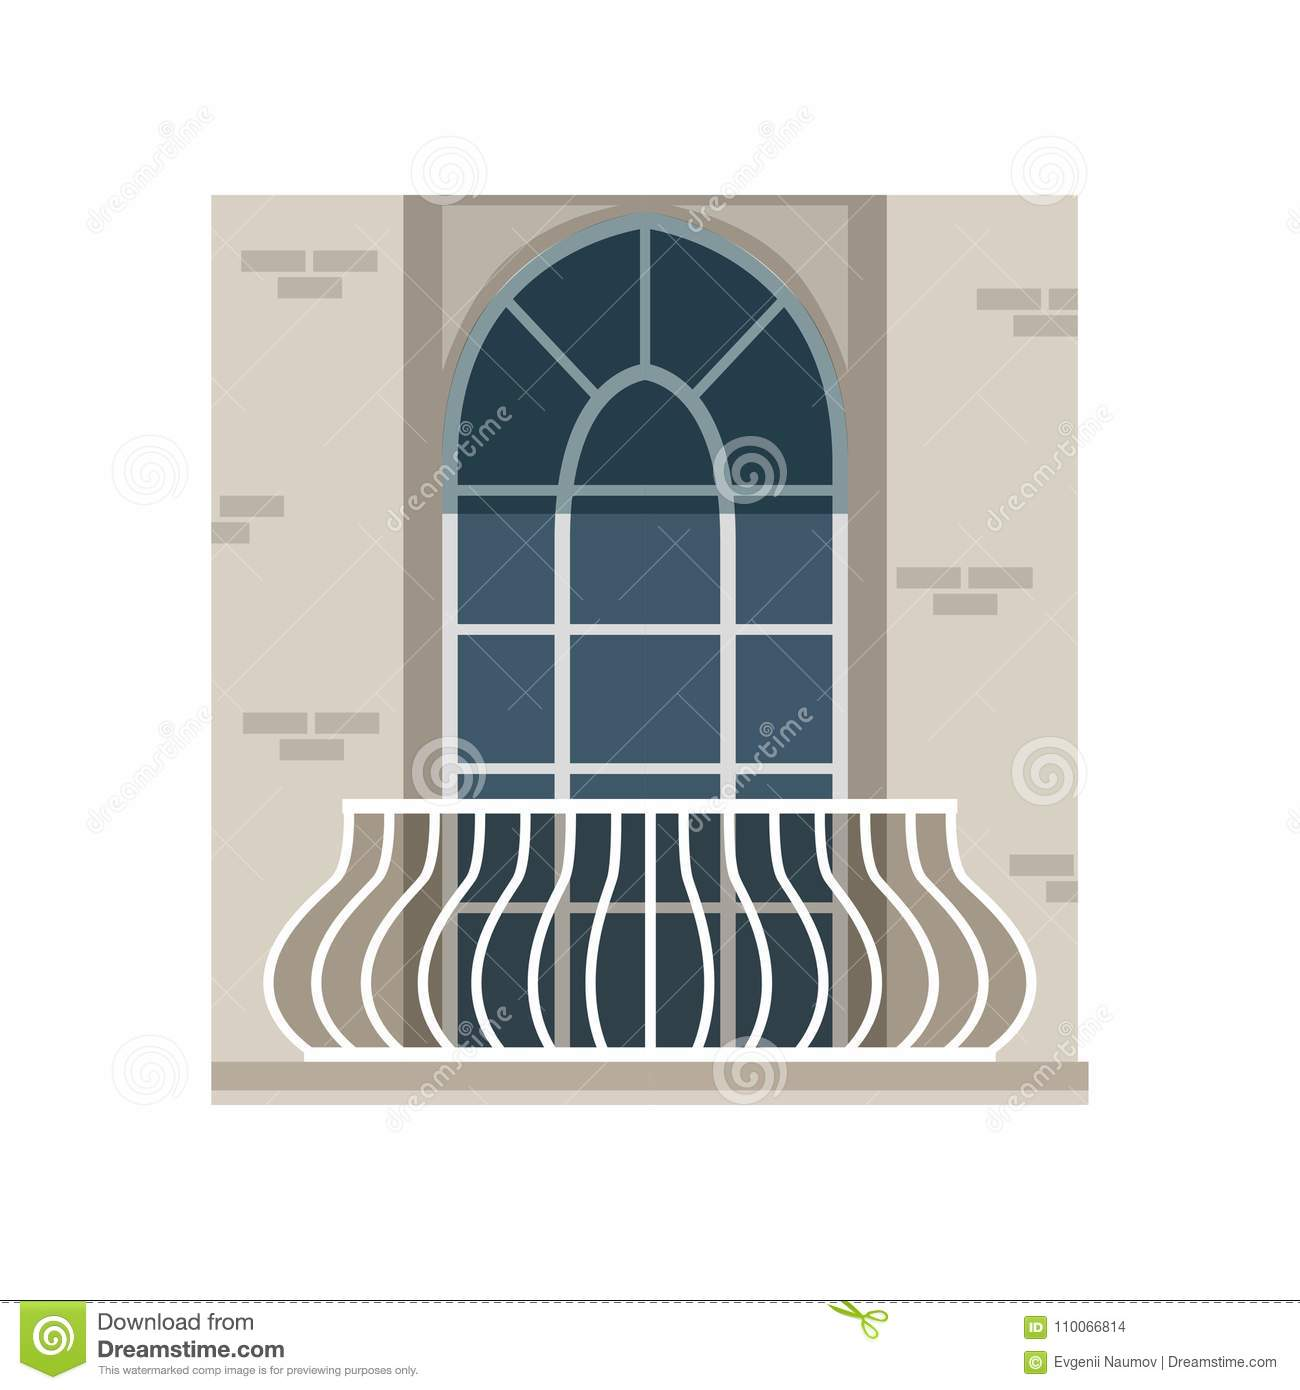 hight resolution of balcony with wrought iron railing and arched window vector illustration isolated on a white background